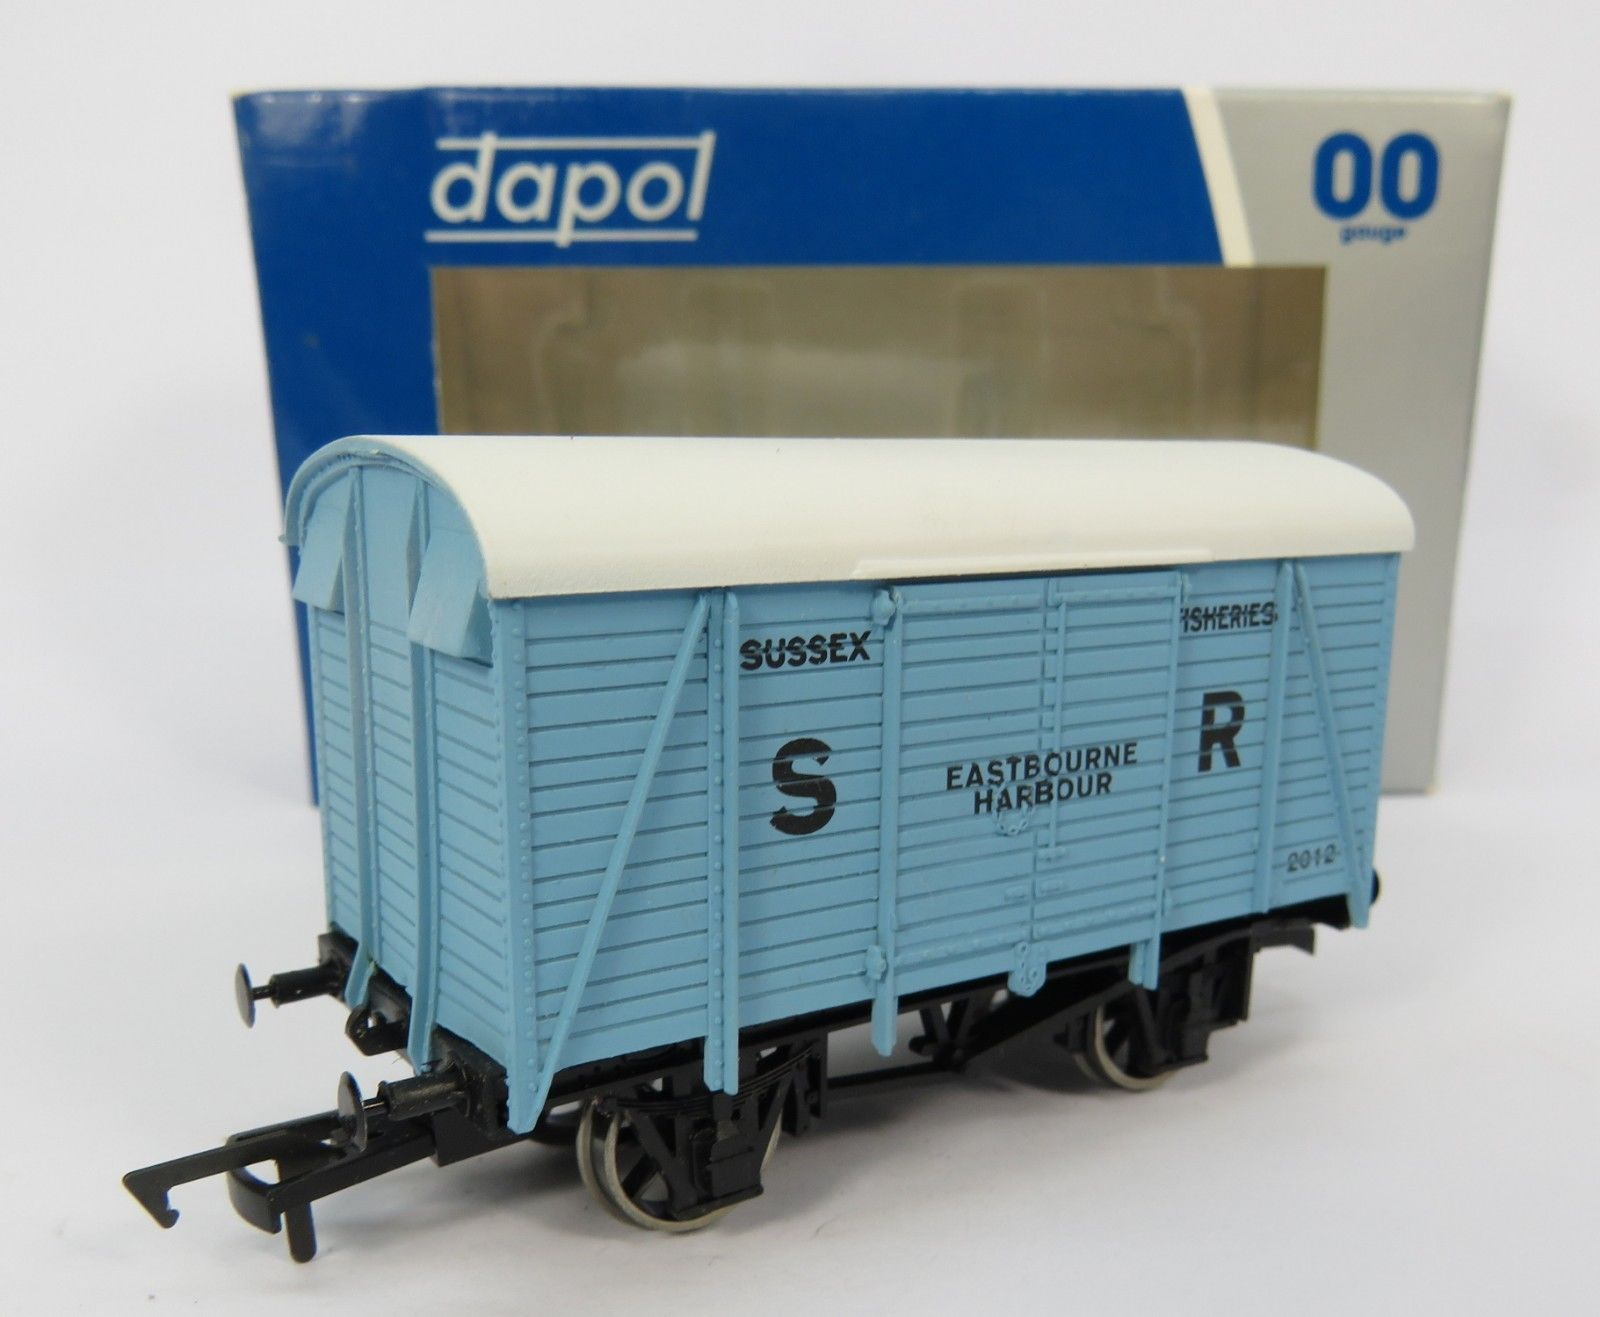 S2108P Train - Dapol front image (front cover)